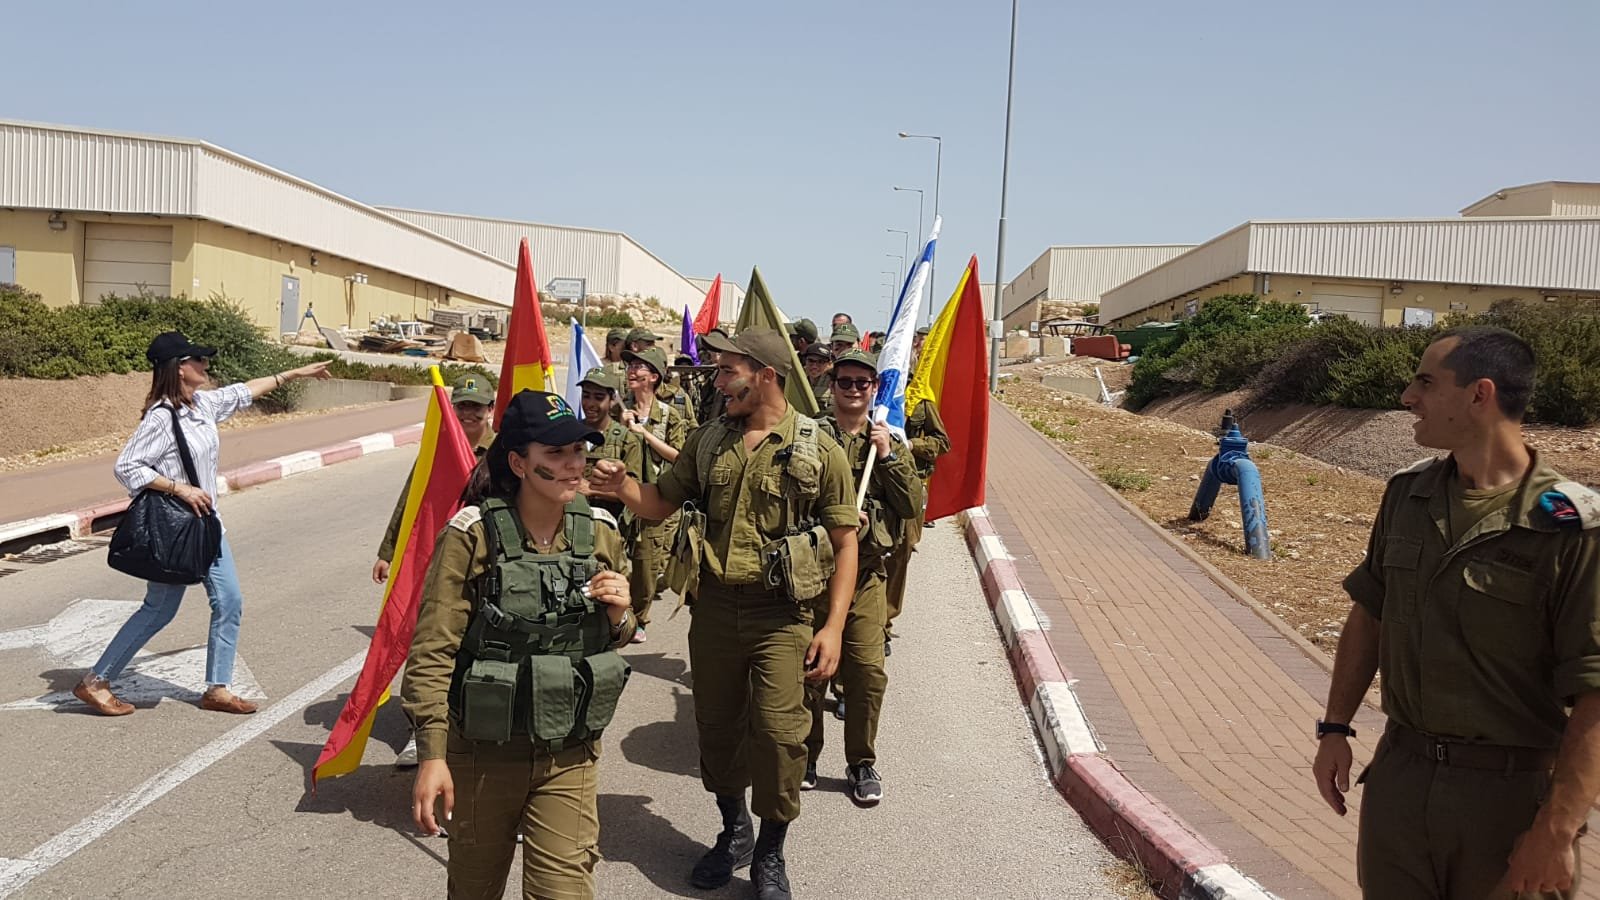 IDF Special in Uniform